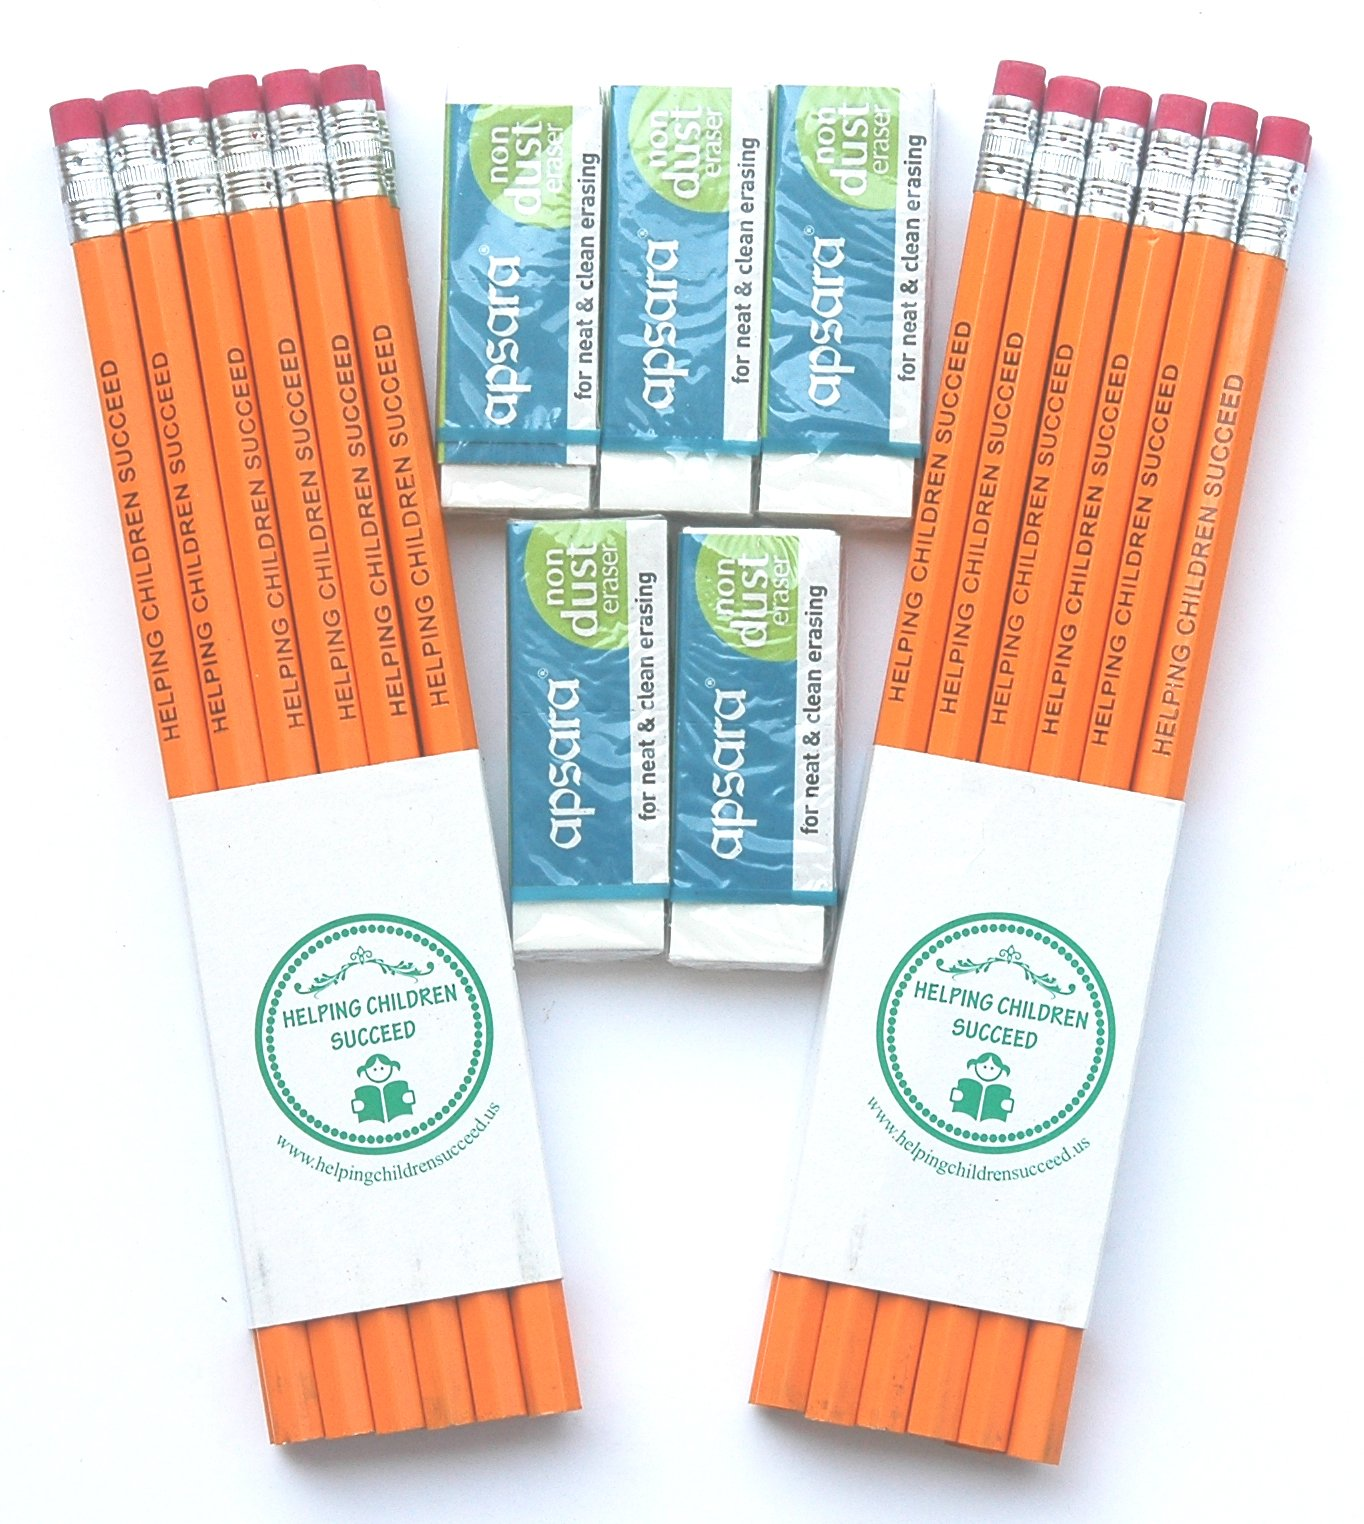 Admirably Sensitive Wonder Wands. Bonded Lead Pencils (No Breakage While Sharpening) Promoting a Social Cause. Helping Children Succeed (24)